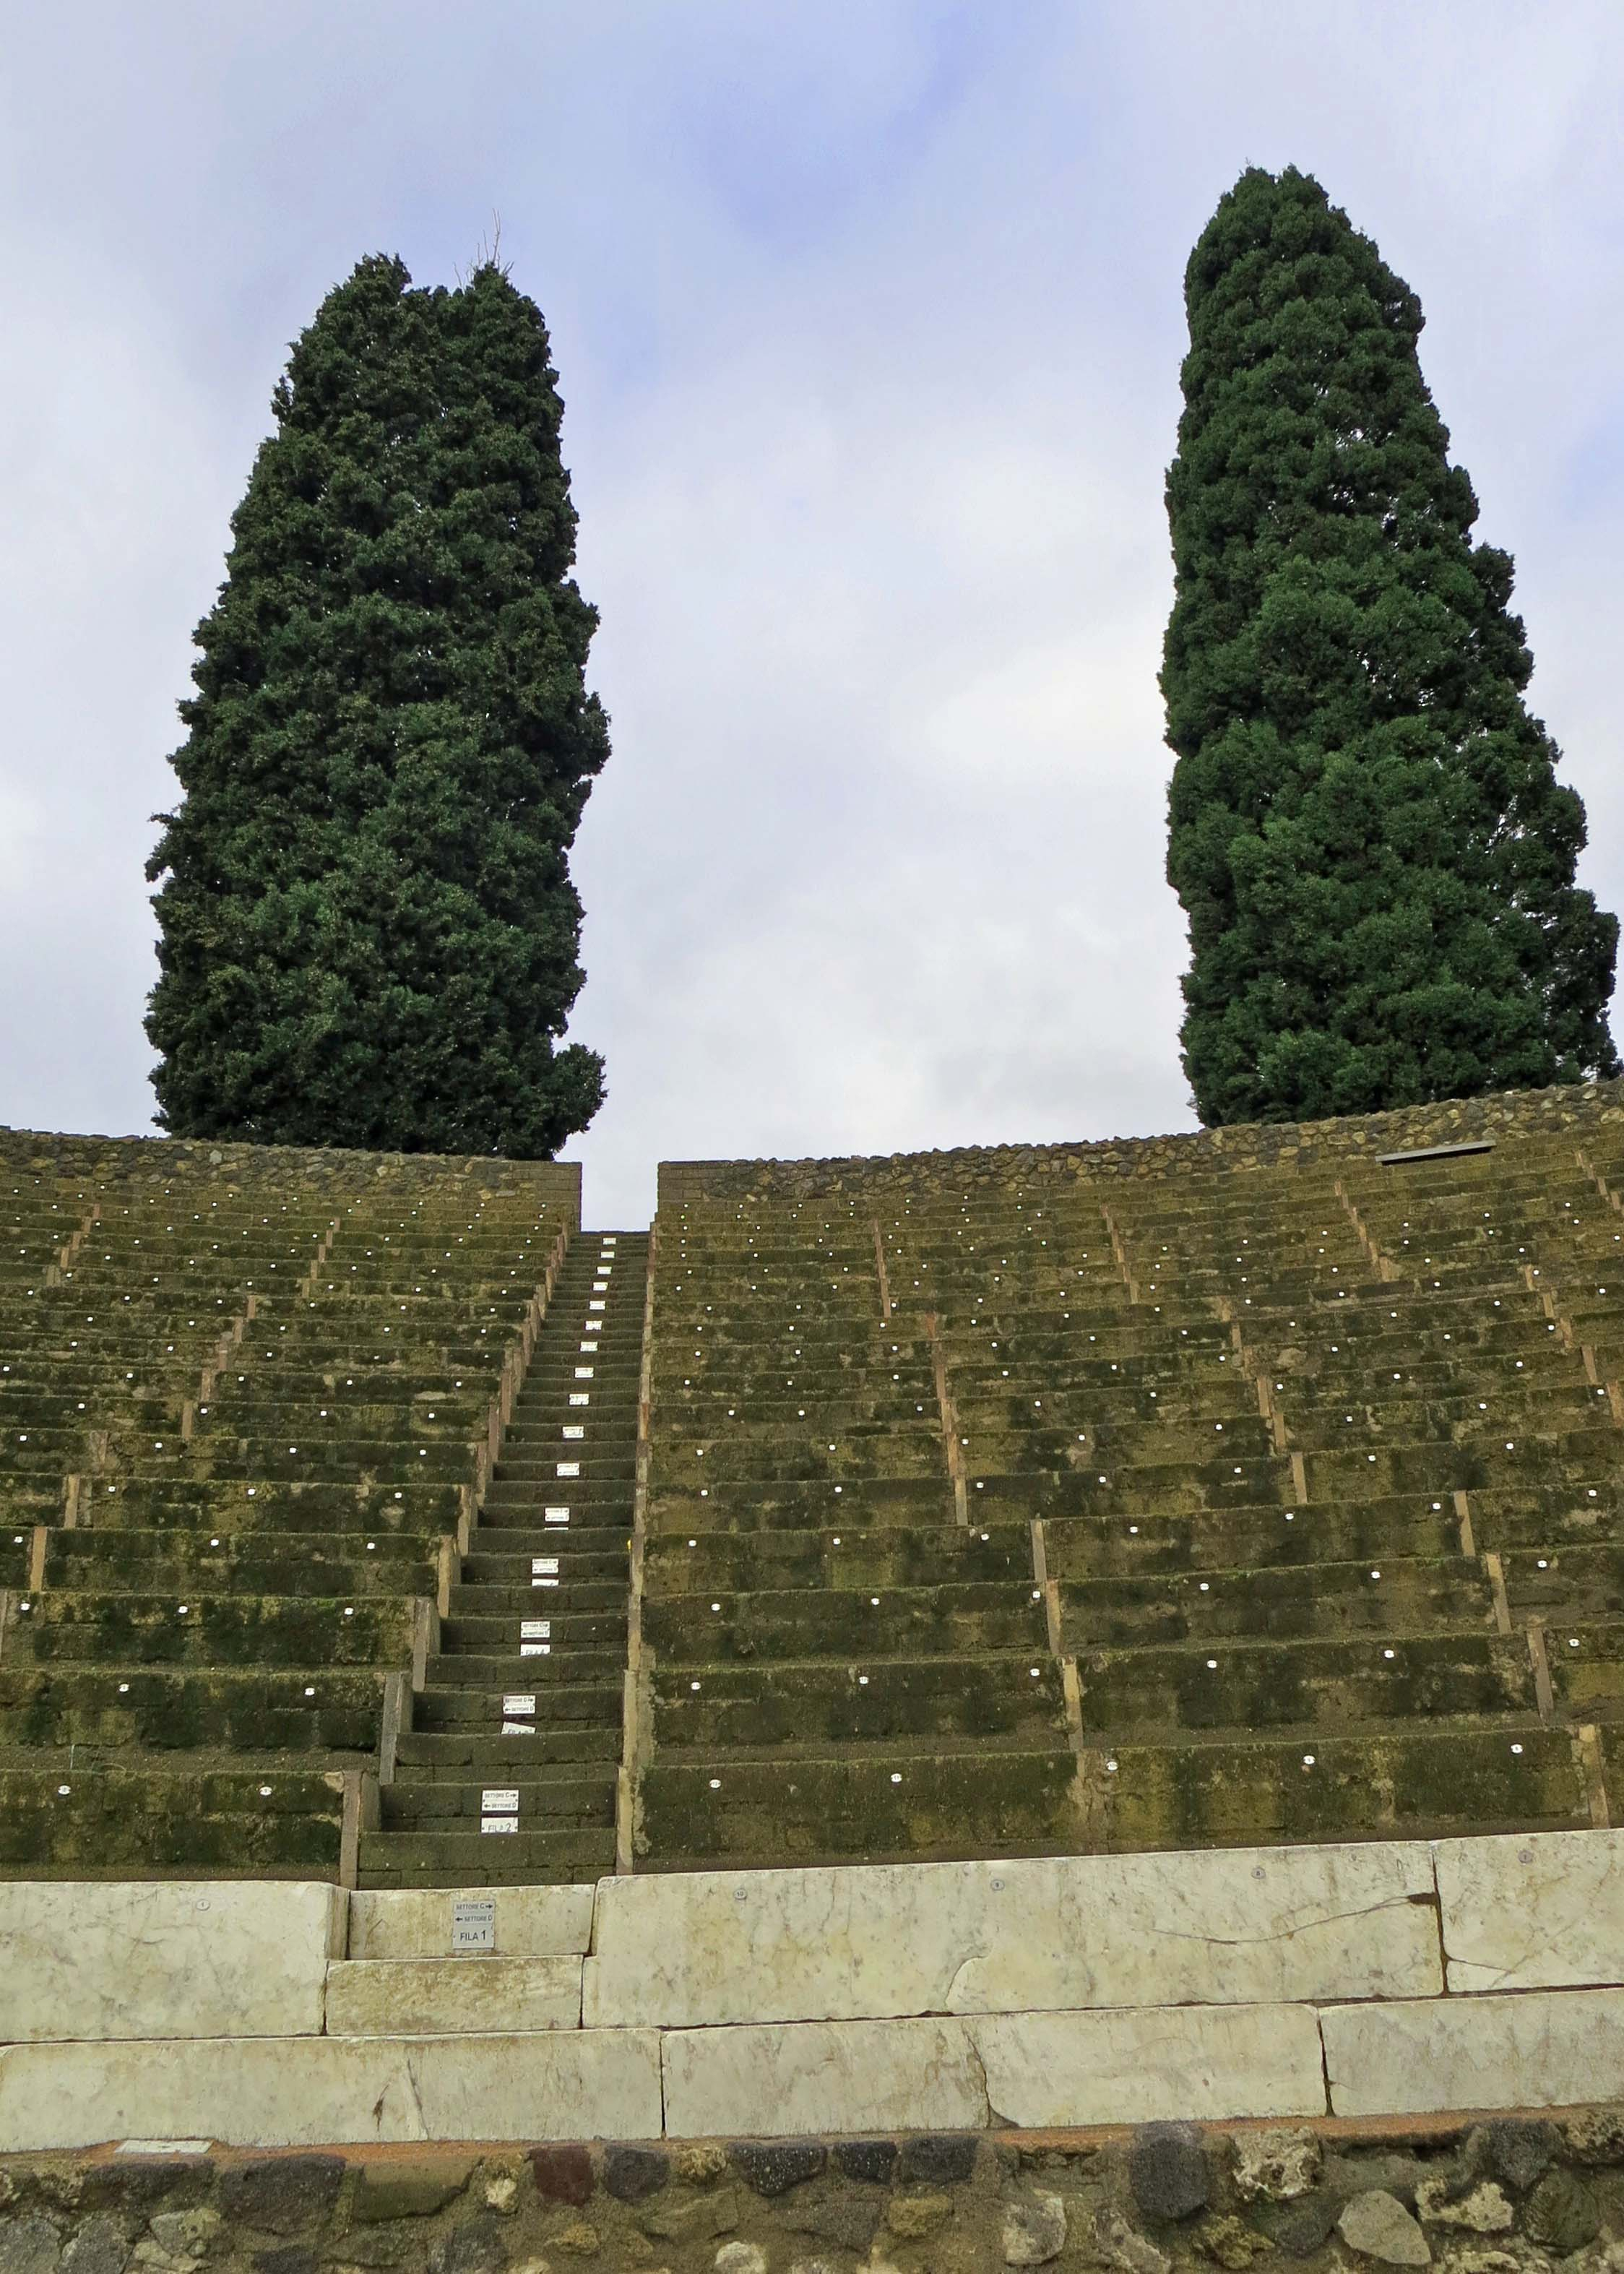 Pompeii's theater, which could seat 5000 people, is located just beyond the gladiator school. Seats were separated by price and class. Poor folks got the nosebleed seats.